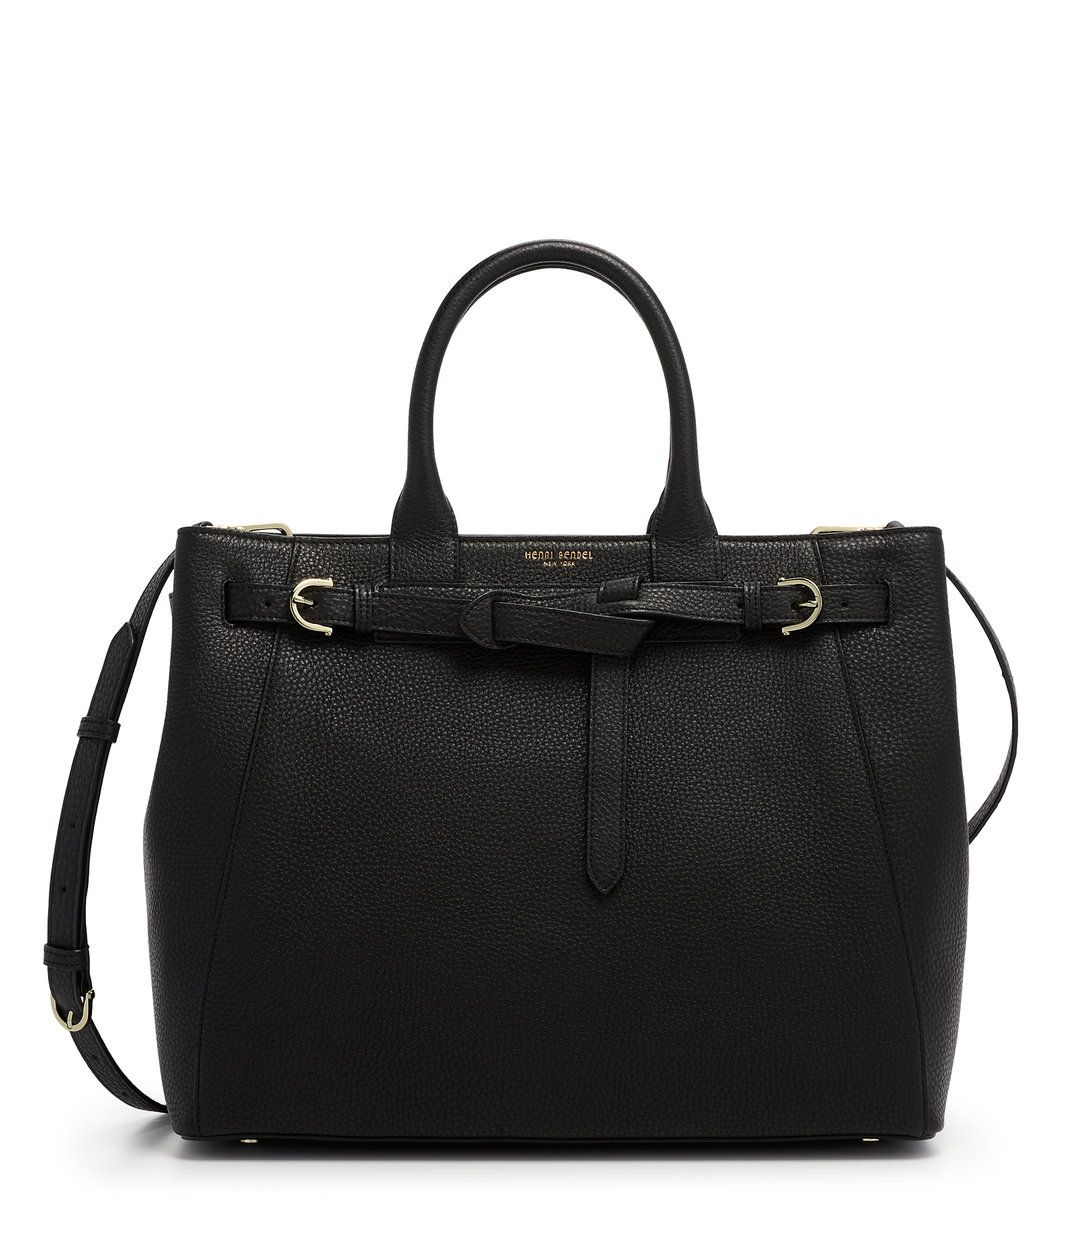 3b33cd3c6c64 The Belmont Leather Tote Bag is a Bendel Girl essential handbag. Crafted  with pebbled leather